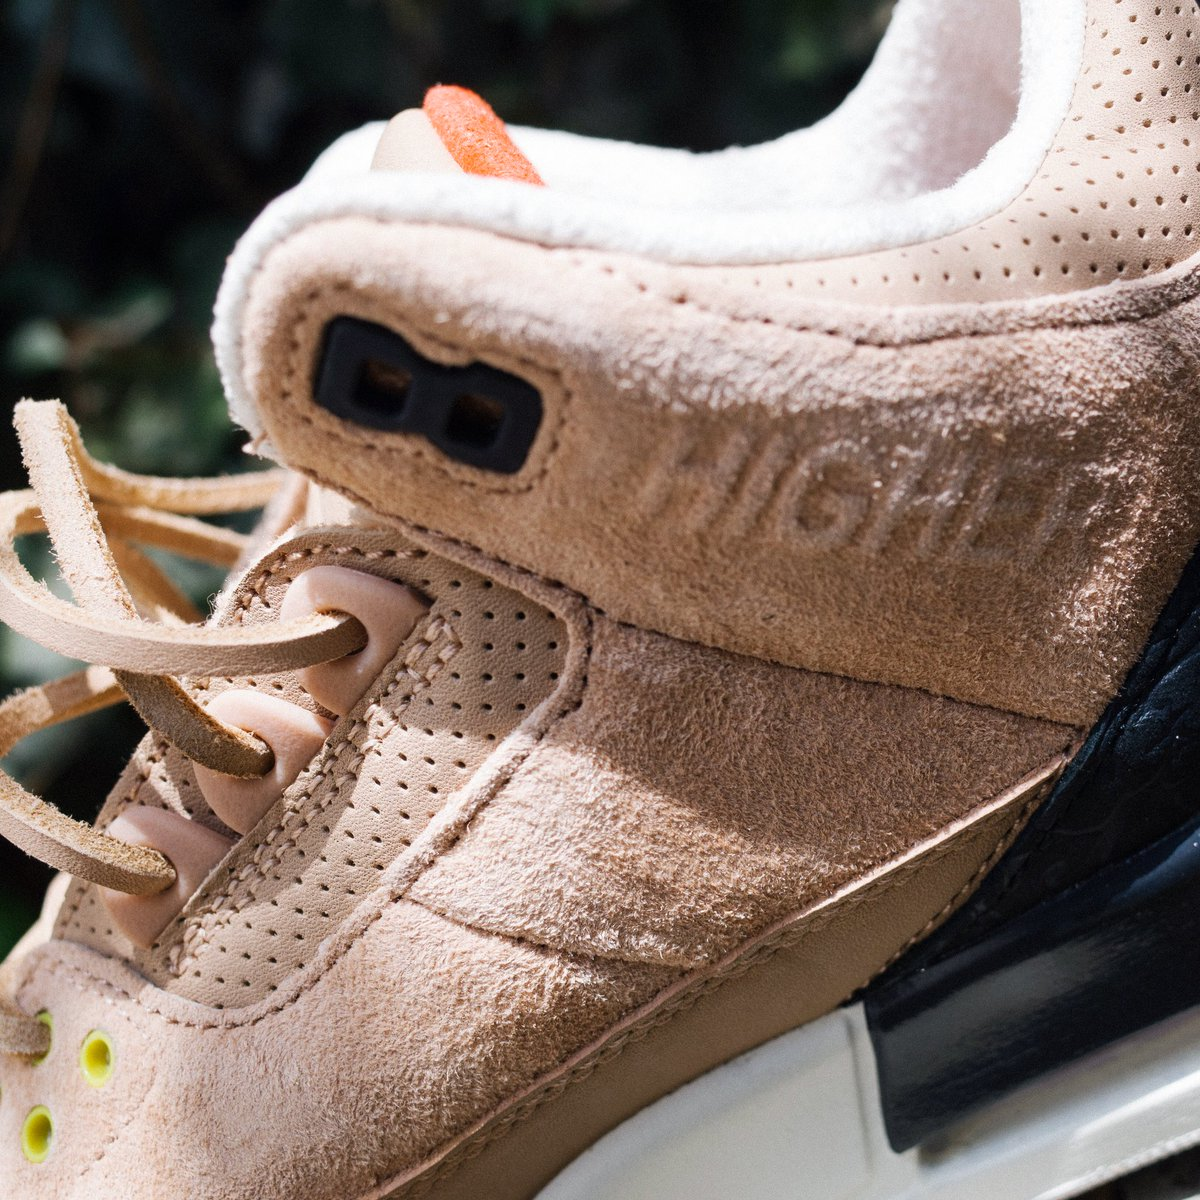 """Justin Timberlake x Air Jordan 3 JTH NRG """"Bio Beige"""" // Available 9AM Tuesday 8/28 at Undefeated La Brea and Silverlake"""